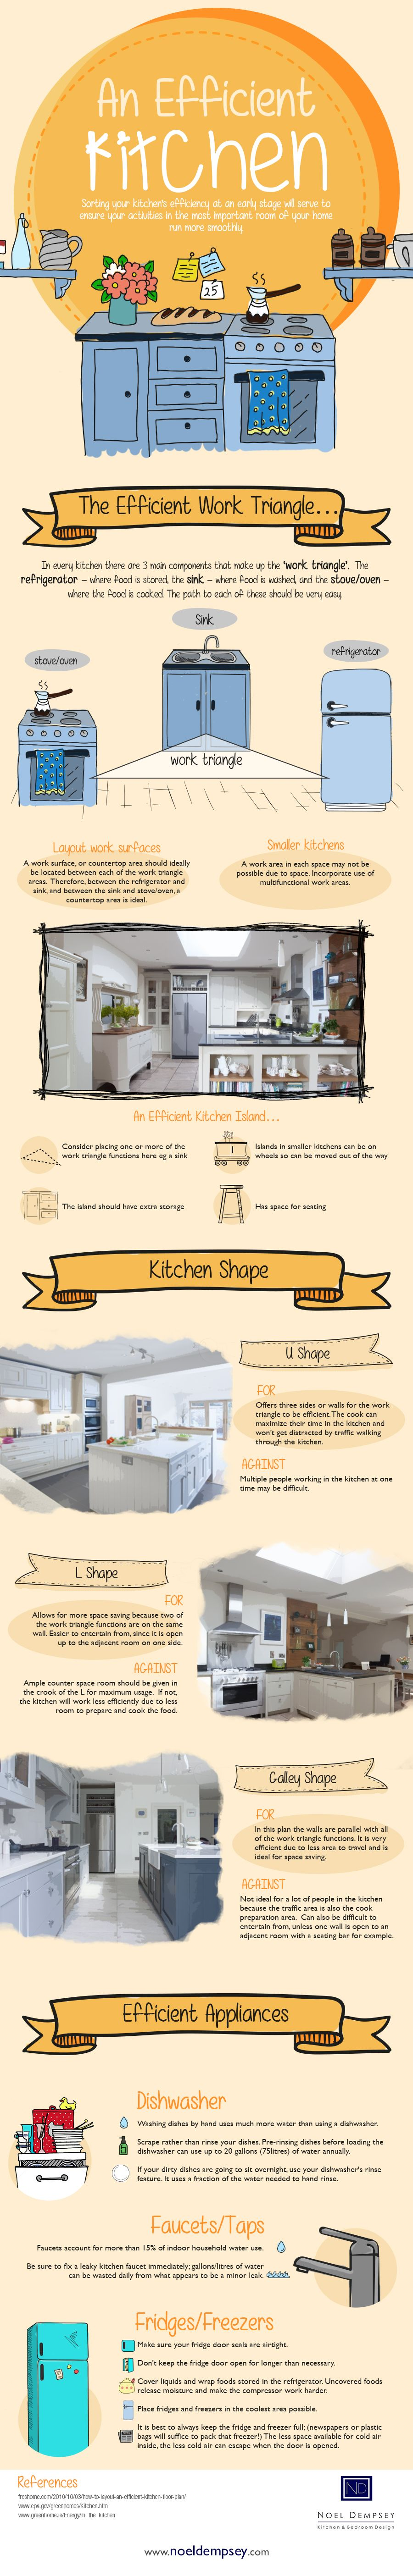 An Efficient Kitchen Infographic | Kitchen Bath Trends